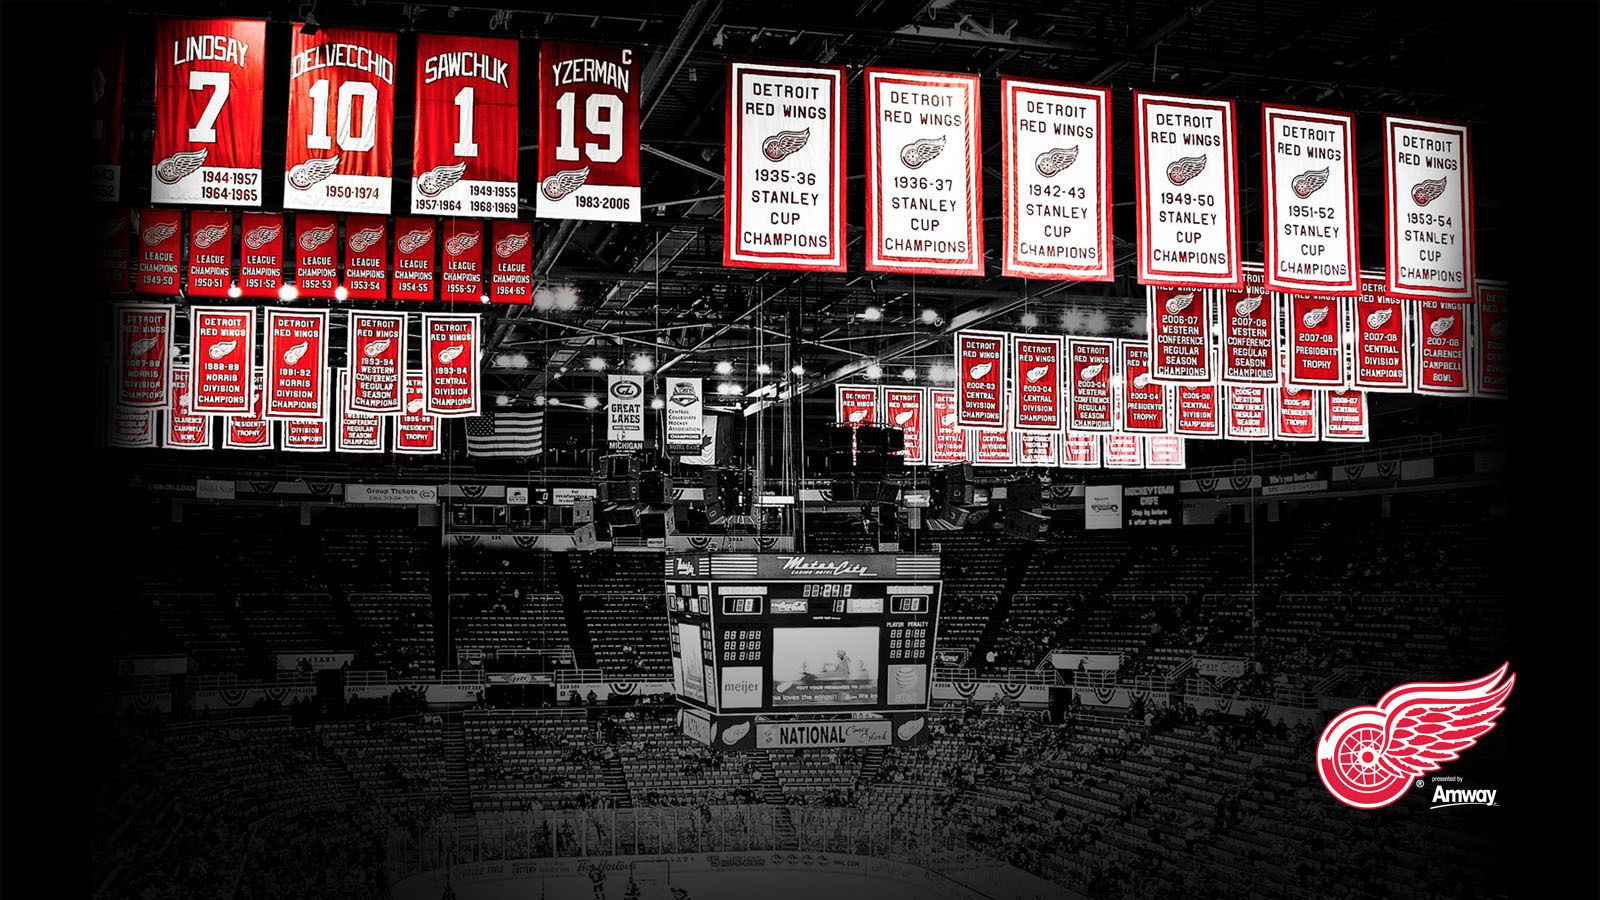 Eli Helland DET D - 20 925000 1 10 85 88 83 86 88 81 85 90 73 30 52 68 85 85 78  Detroit-red-wings-wallpaper-38